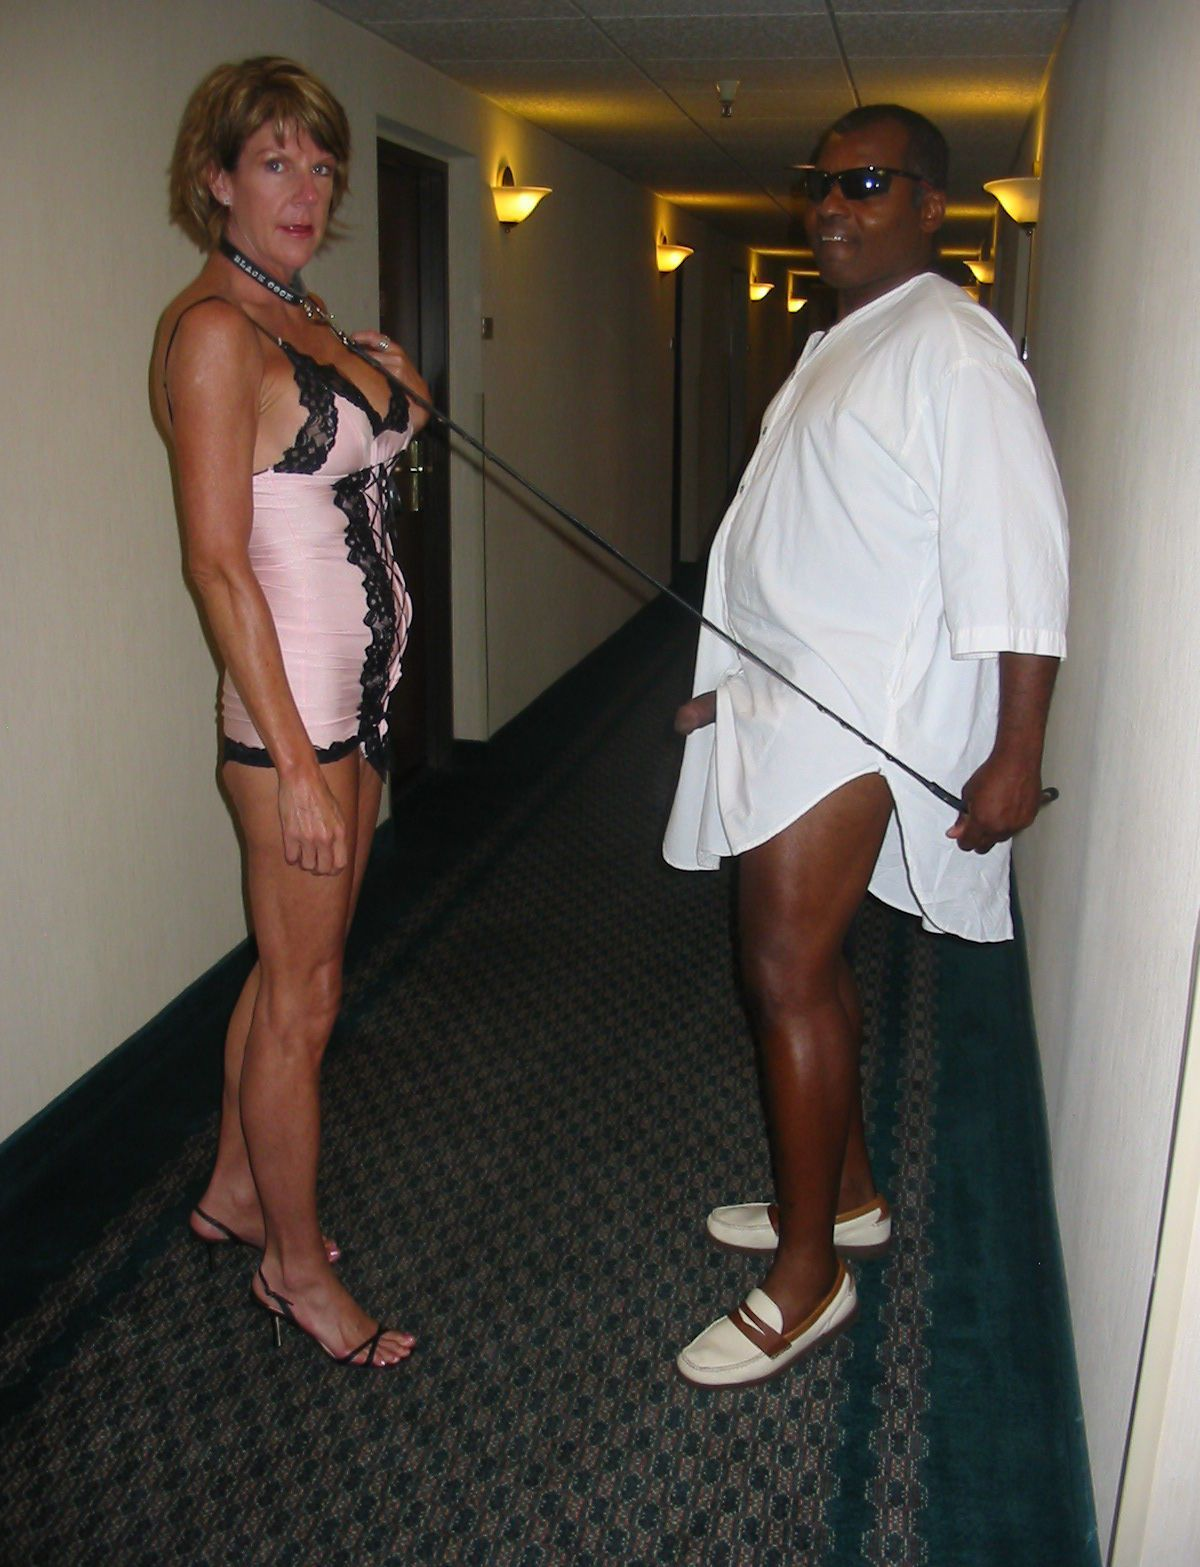 Interracial bdsm amature pictures